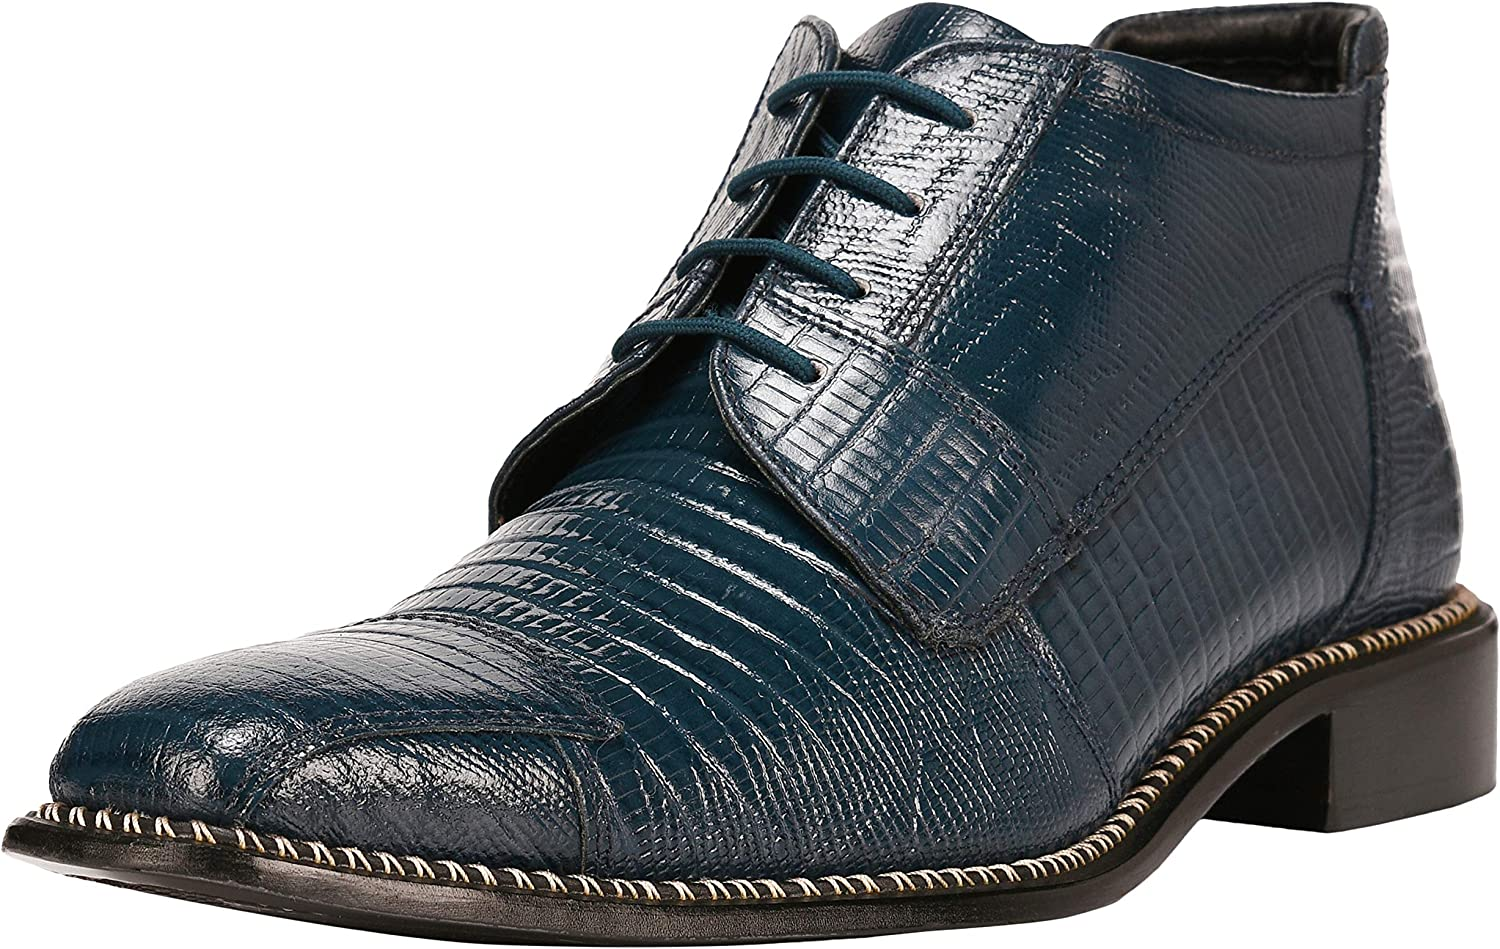 Liberty Men's Genuine Leather Ankle High Time sale Lizard Print Discount mail order Lace U Top